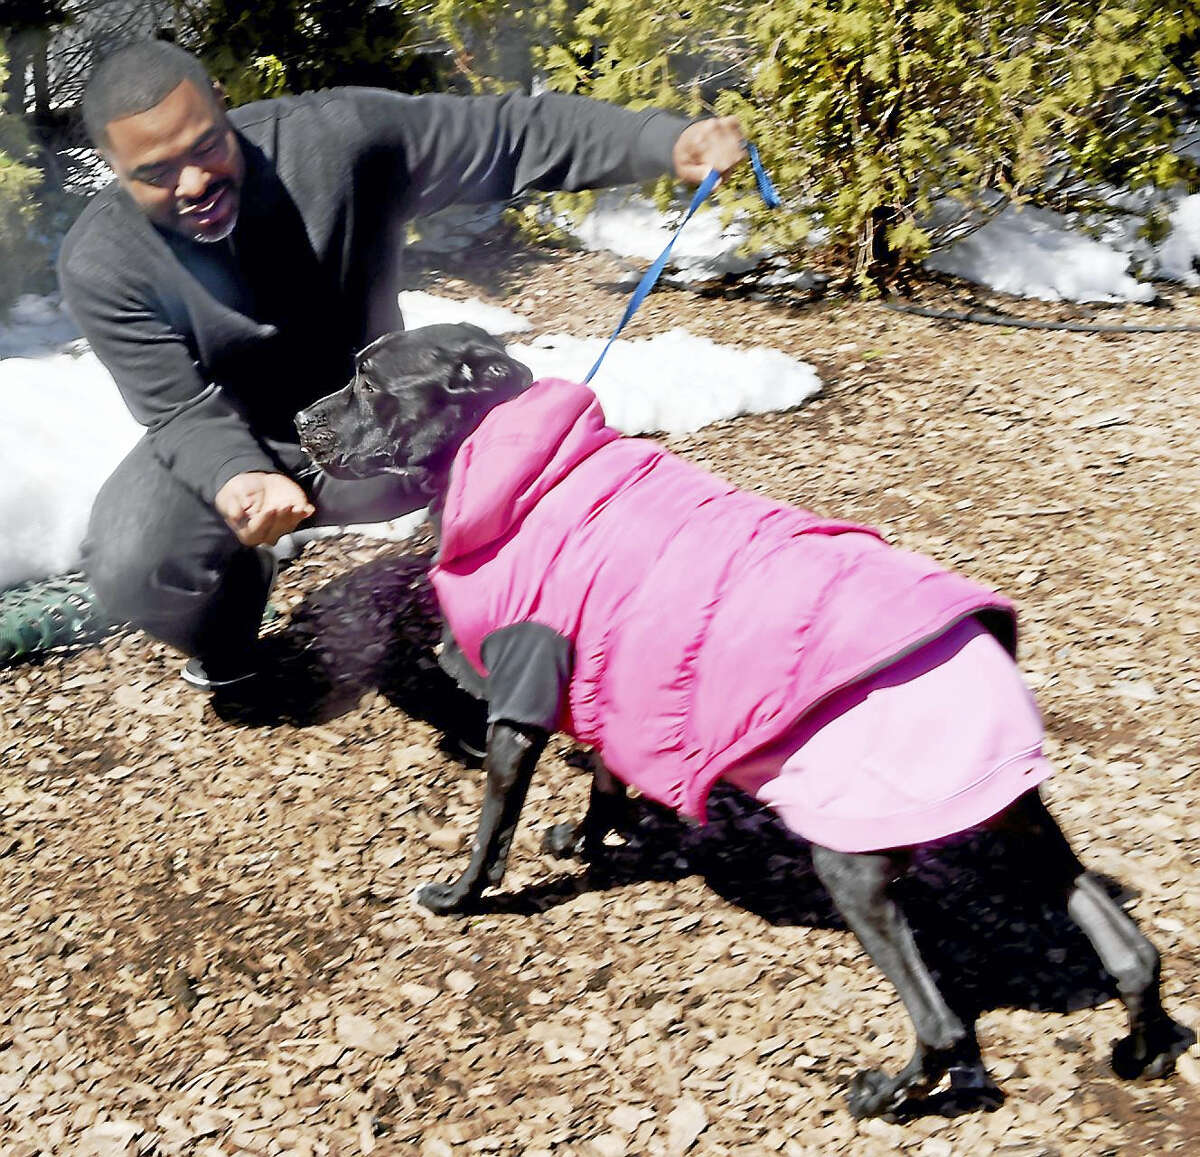 The New Haven Register's Shahid Abdul Karim with the Labrador retriever/pit bull mix dog Hope at a veterinary hospital in Connecticut last week. The dog was recently found wandering in Branford and emaciated with serious medical conditions.